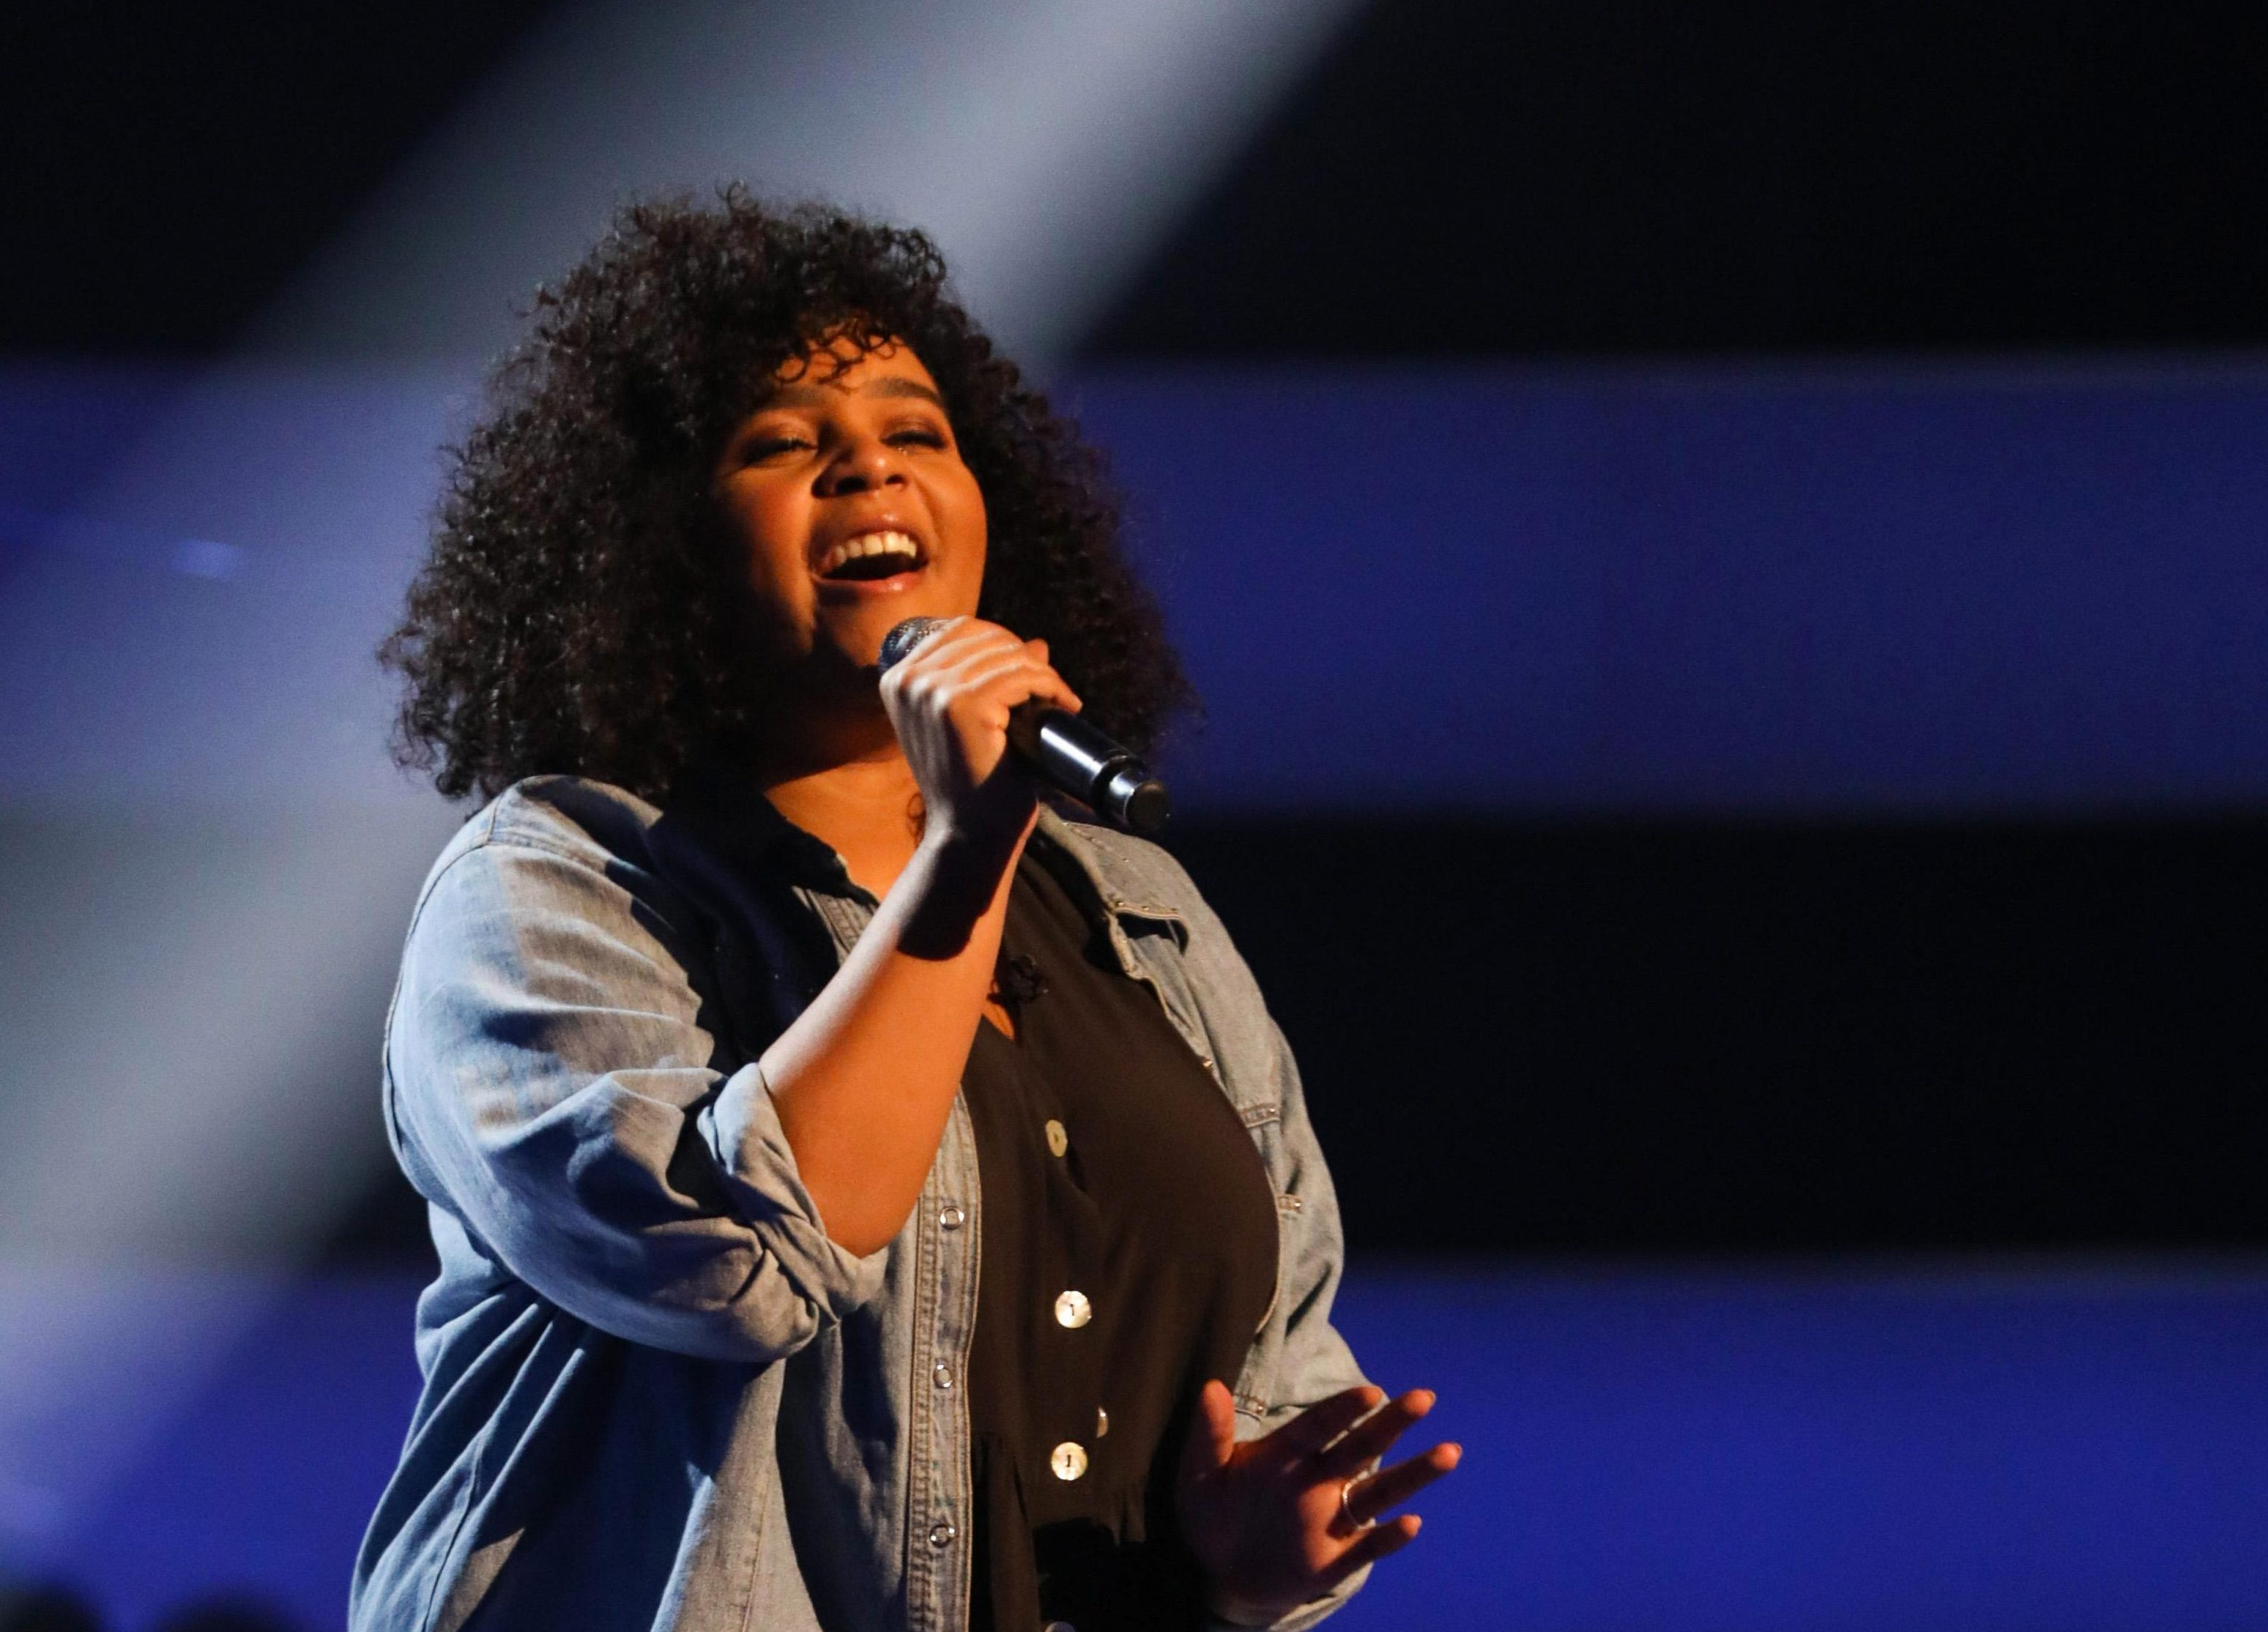 Who will win The Voice 2019 and who will be the winning judge? Latest odds and predictions